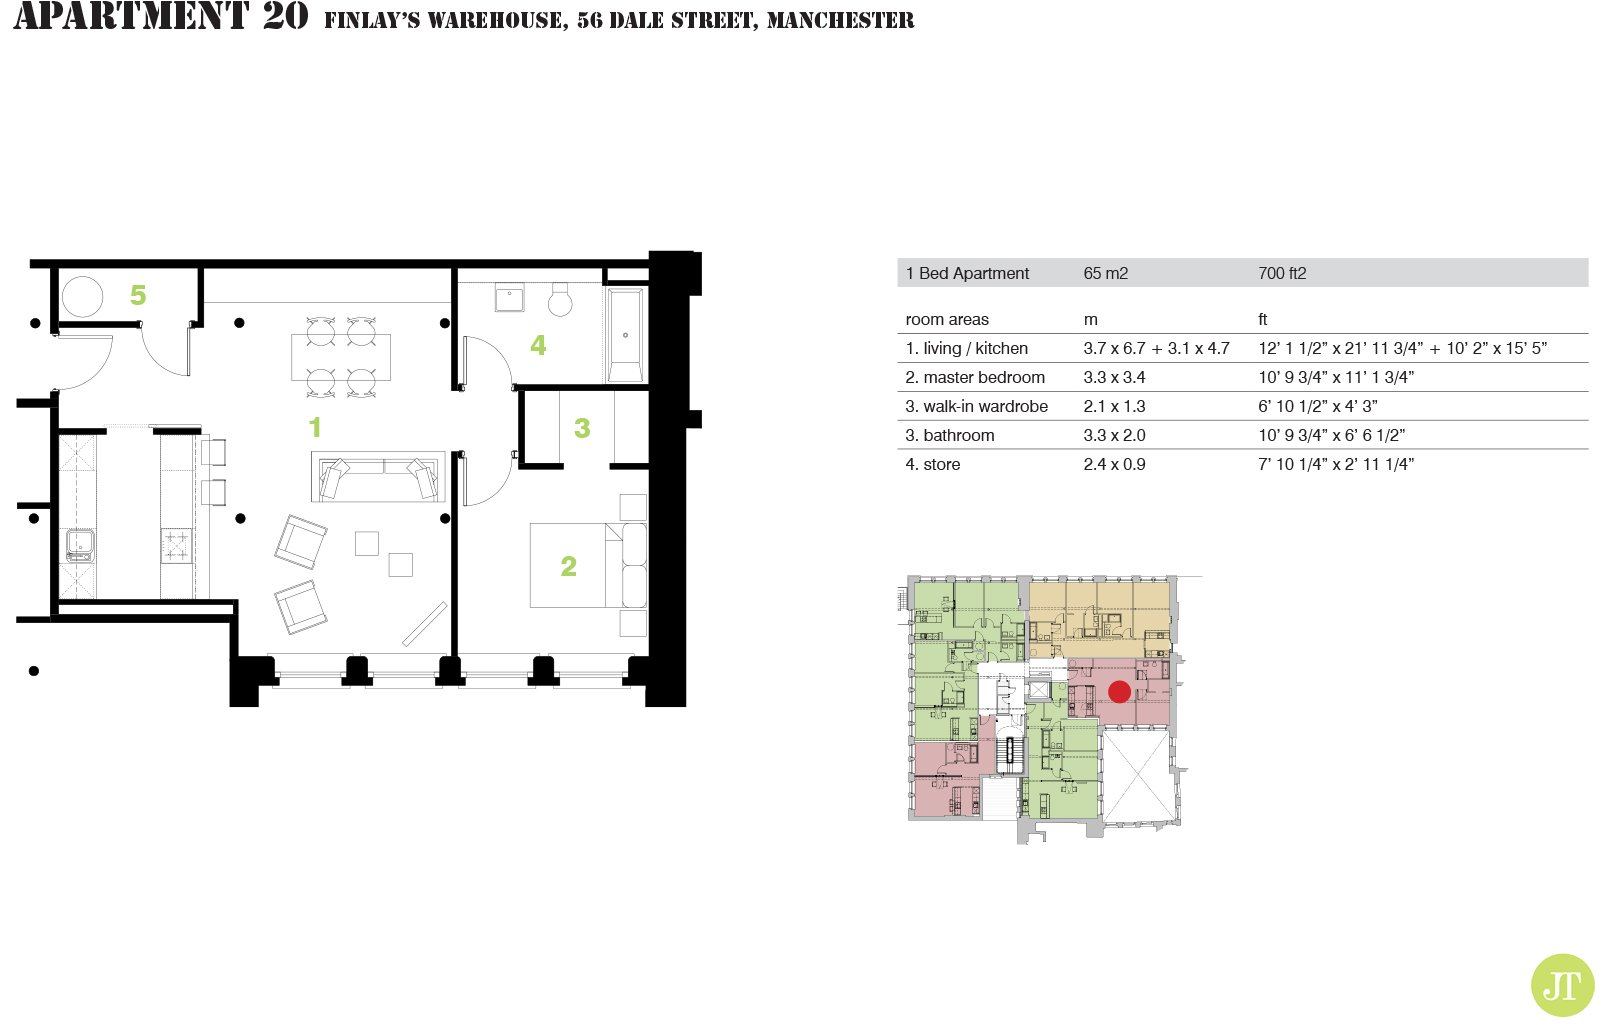 Finlays Warehouse Floor Plans Dale Street Manchester